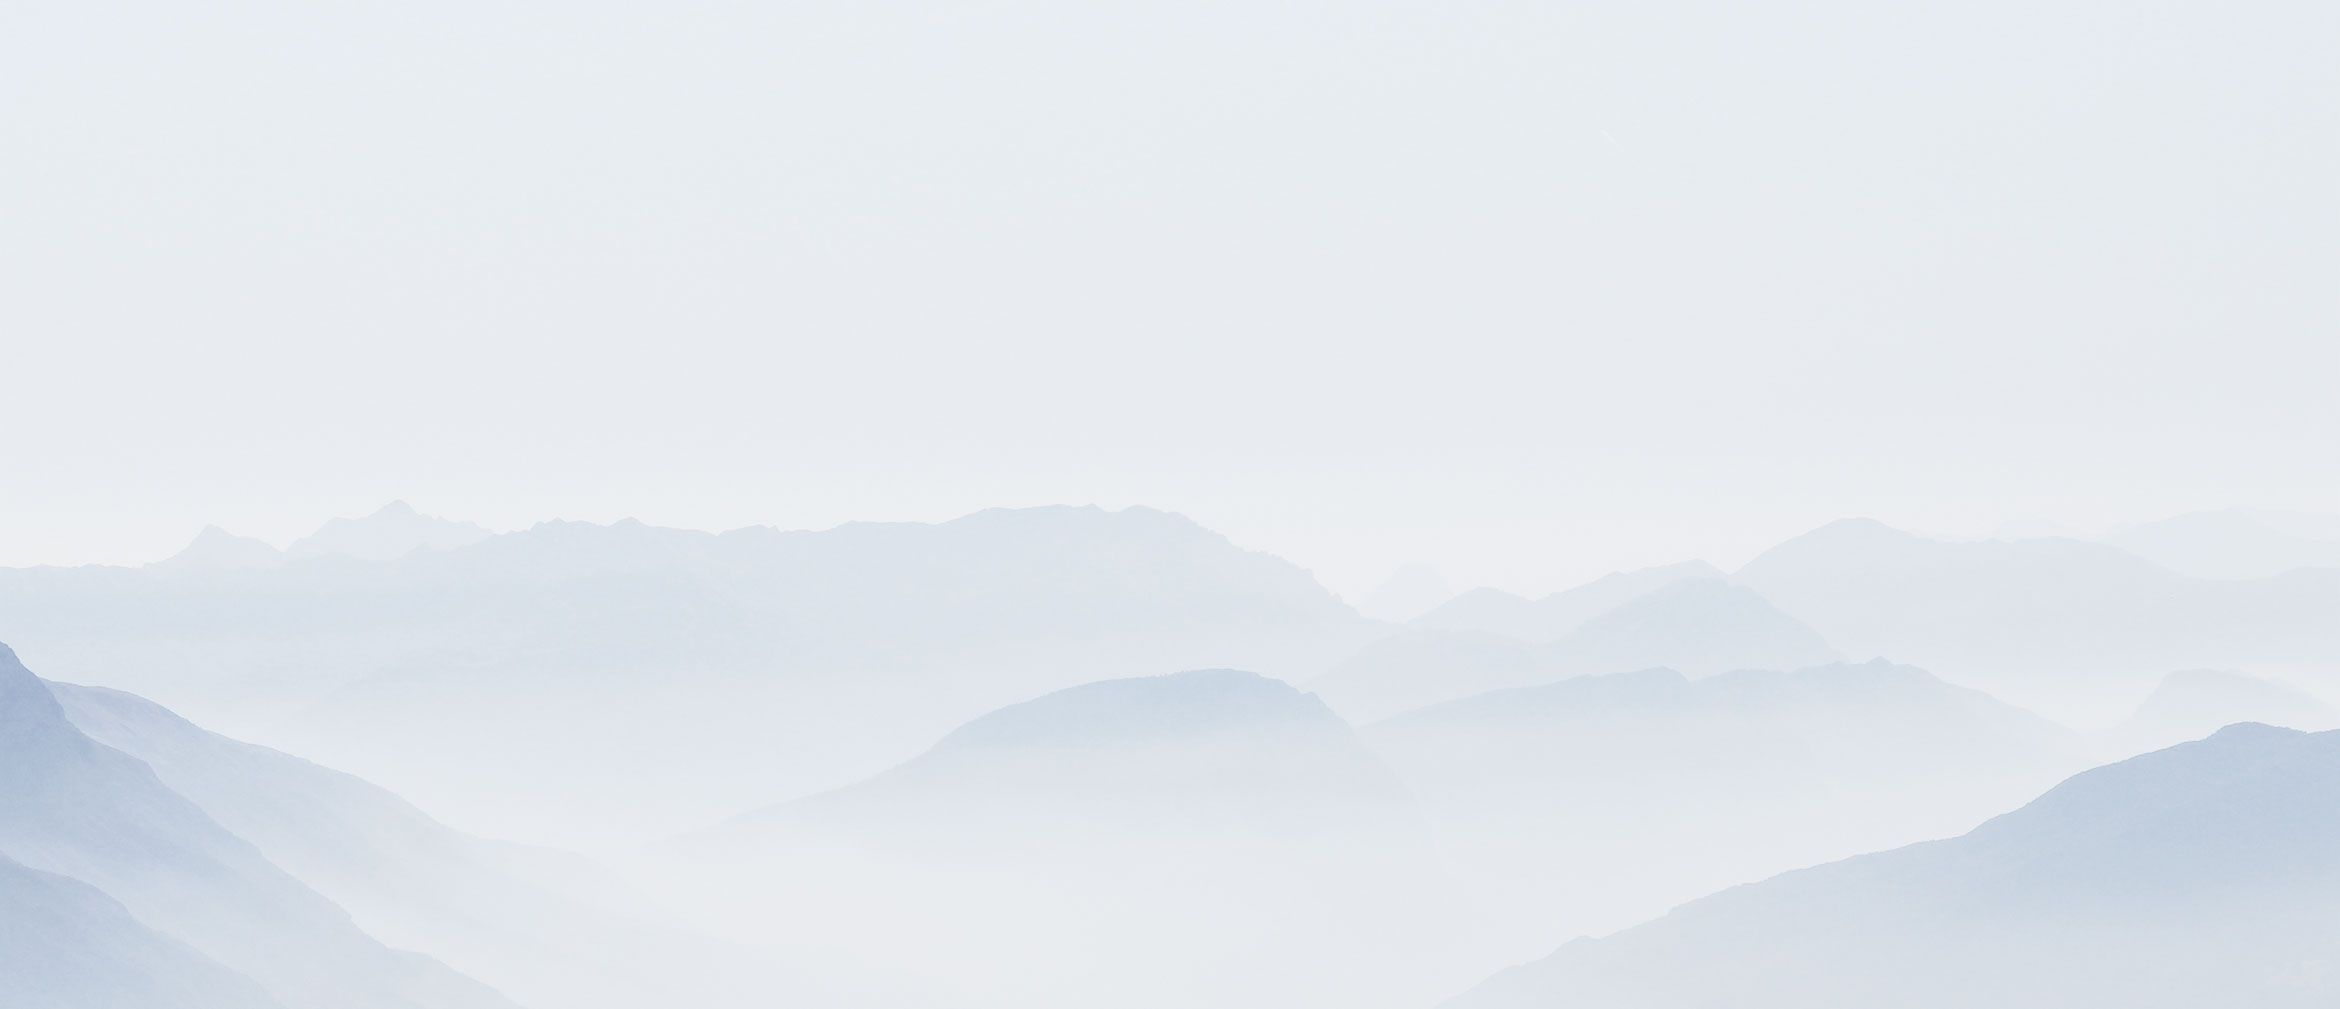 light_gradient_bands_bg